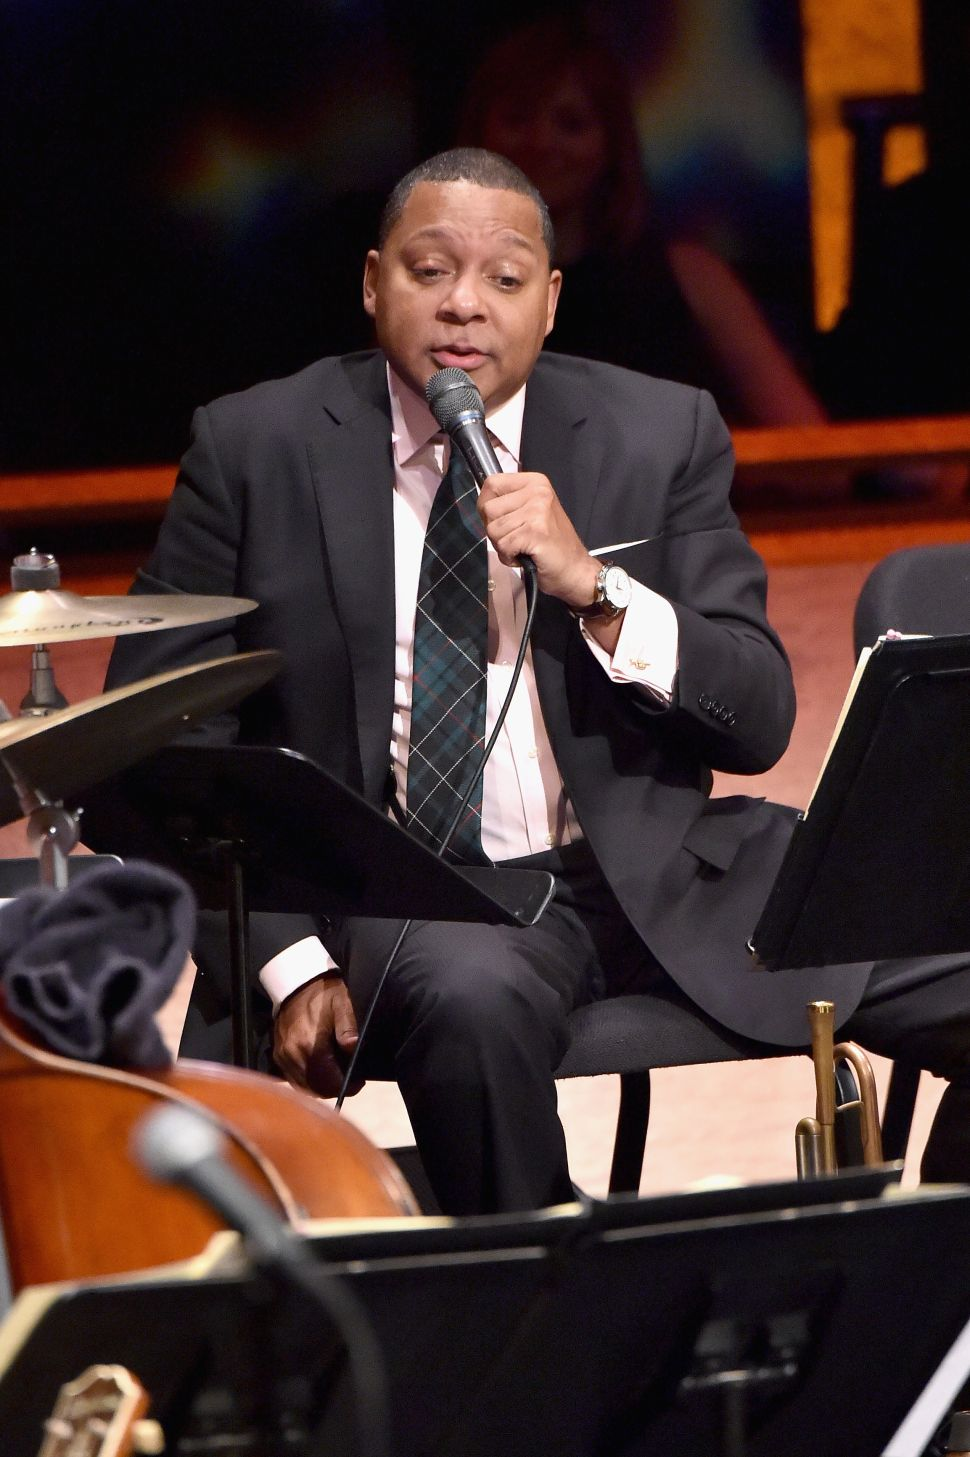 Wynton Marsalis (Photo by Mike Coppola/Getty Images for Jazz at Lincoln Center),